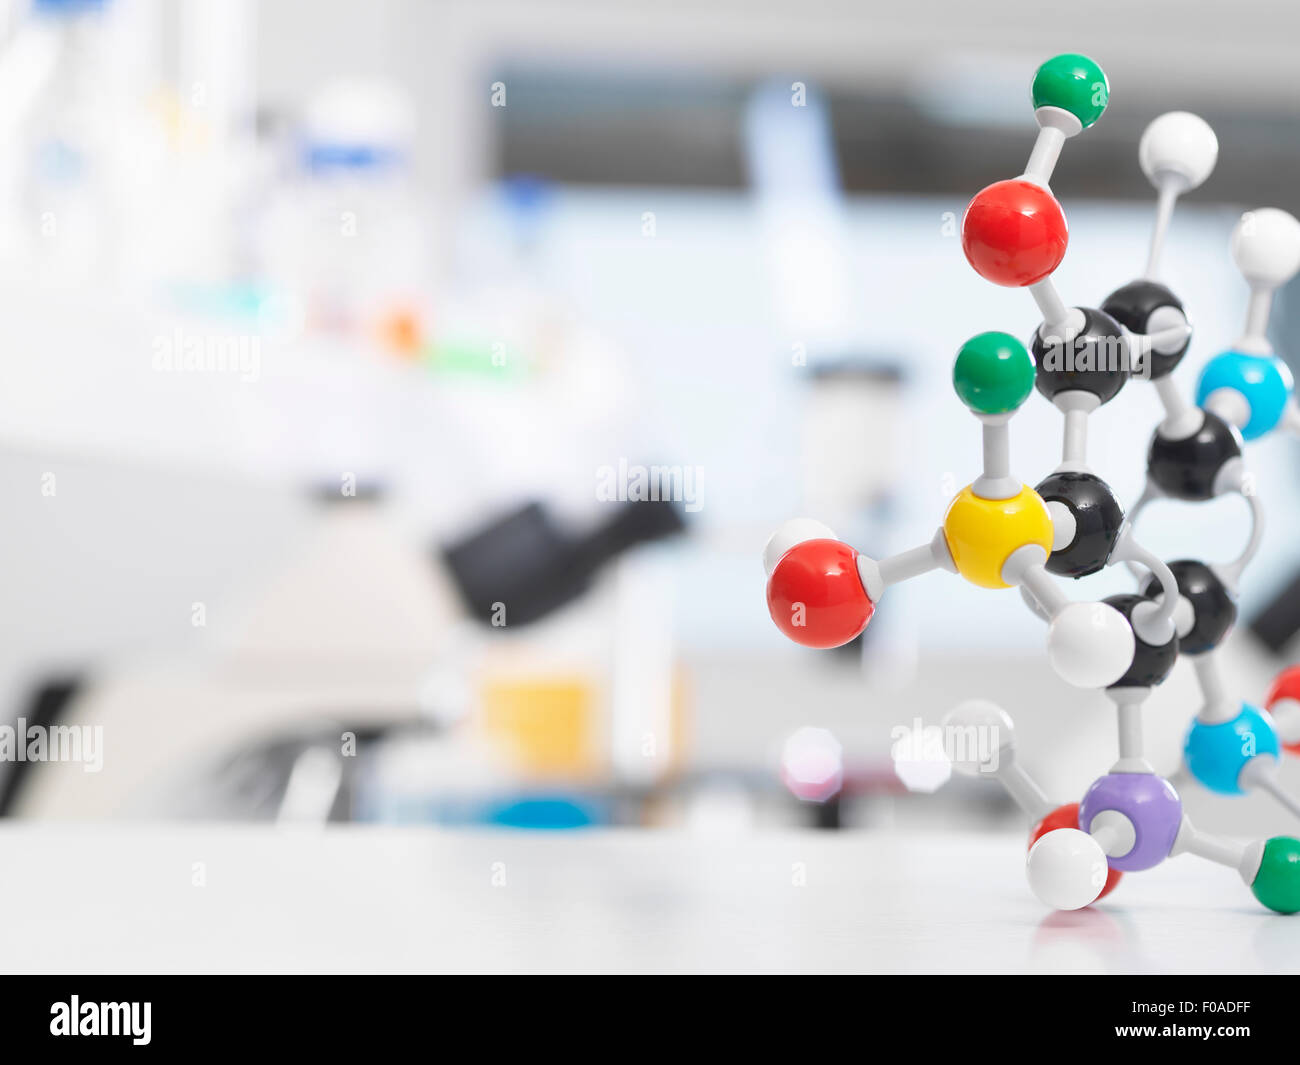 Molecular model structure sitting on a lab bench during a experiment. - Stock Image